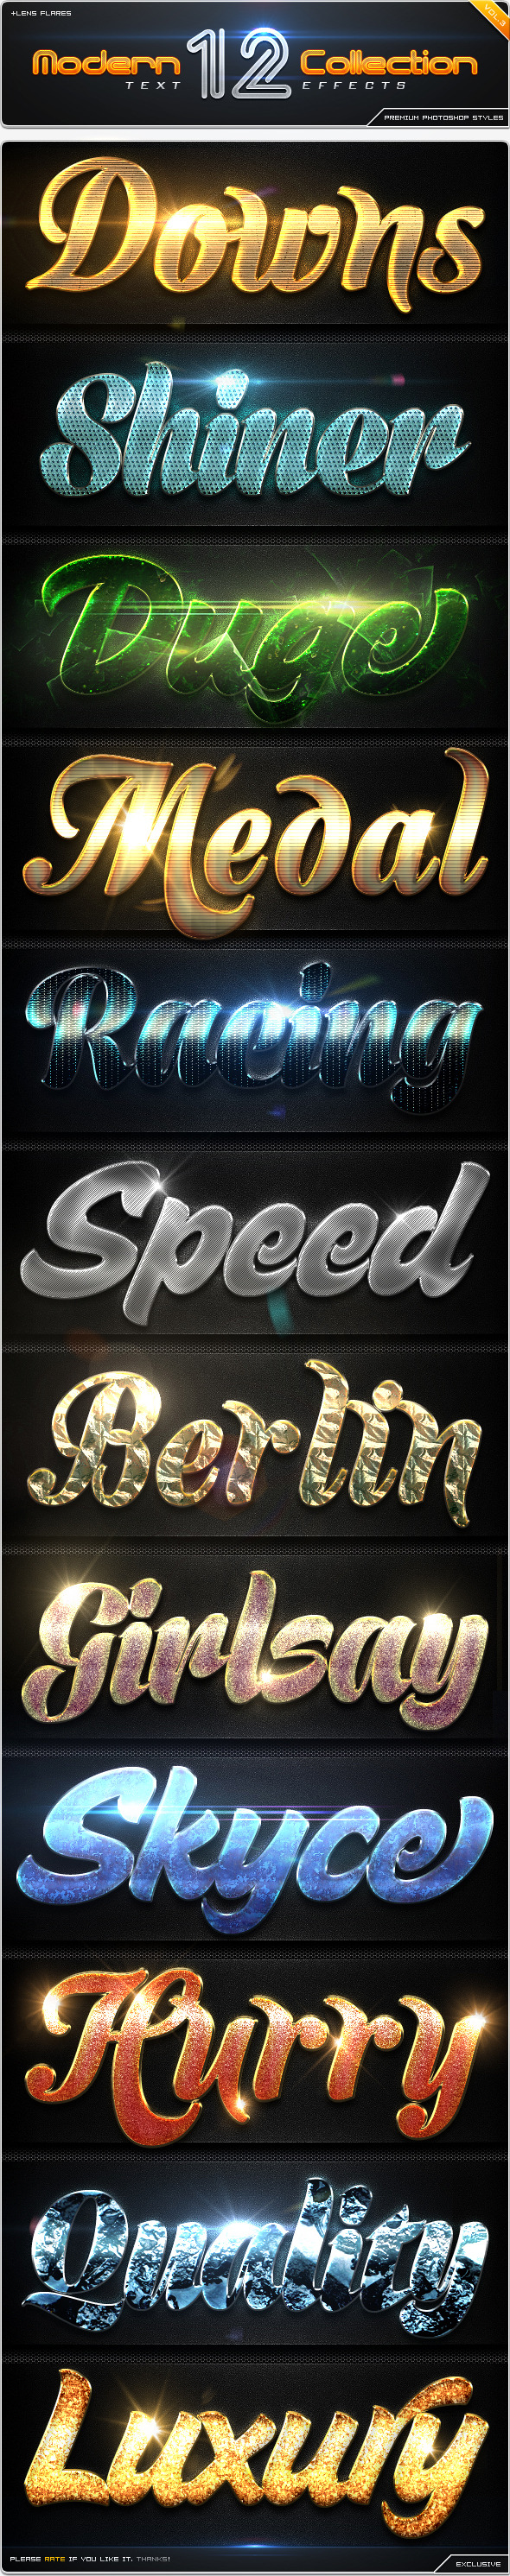 GraphicRiver 12 Modern Collection Text Effect Styles Vol.3 8833021